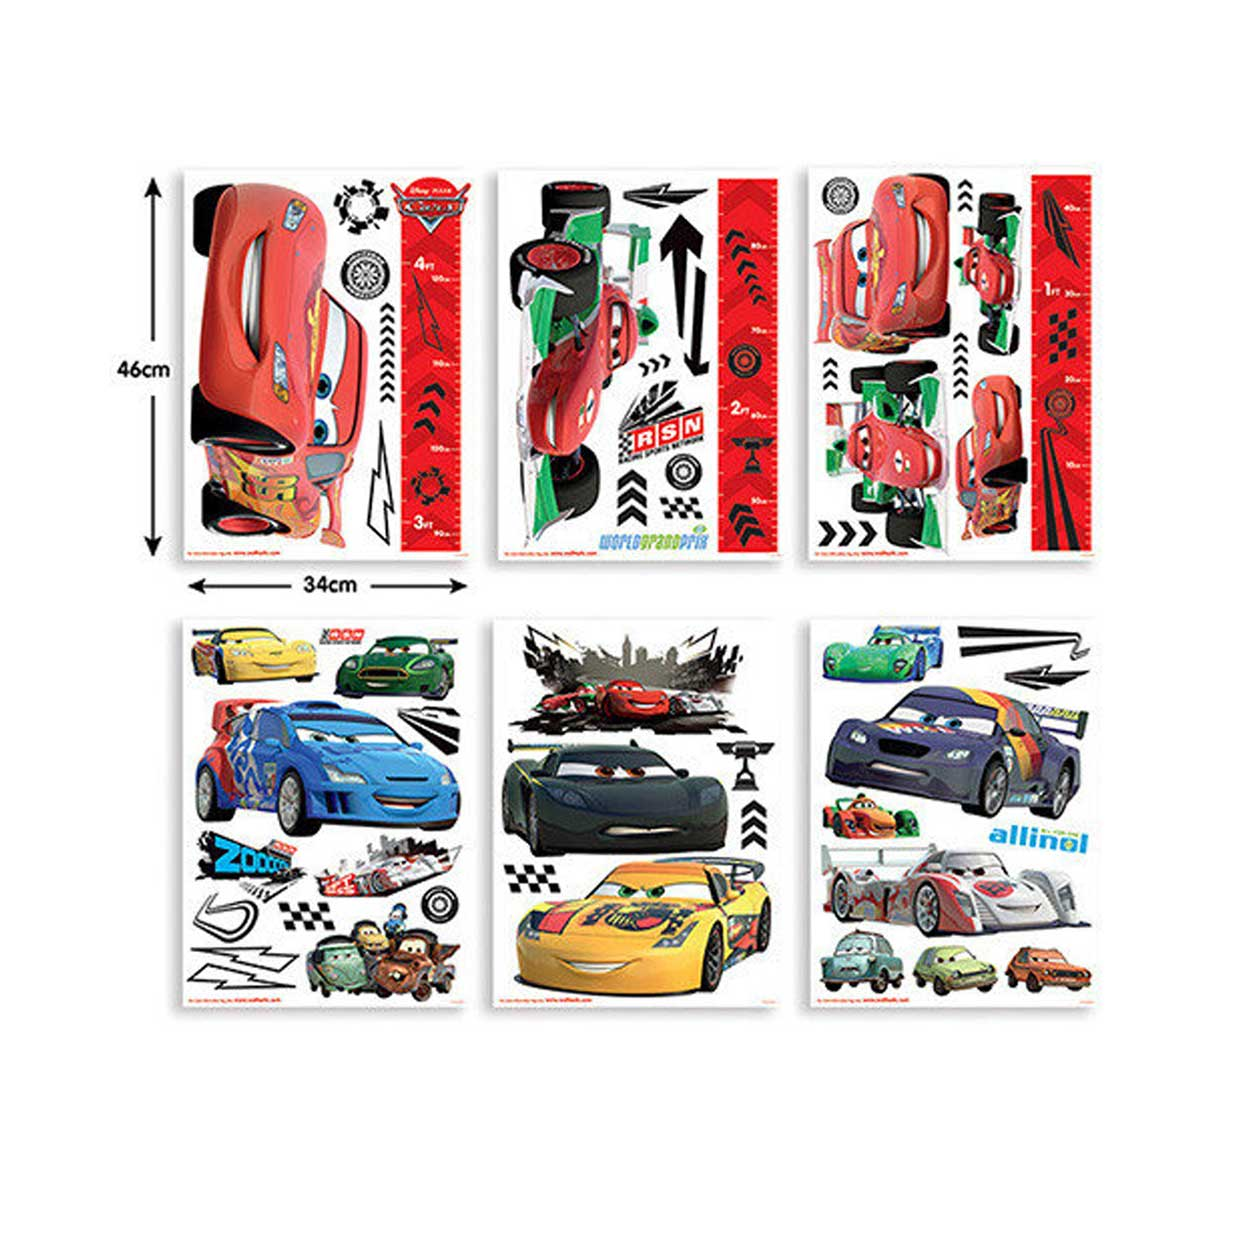 Cars Muurstickers Kinderkamer.Walltastic Muurstickers Cars